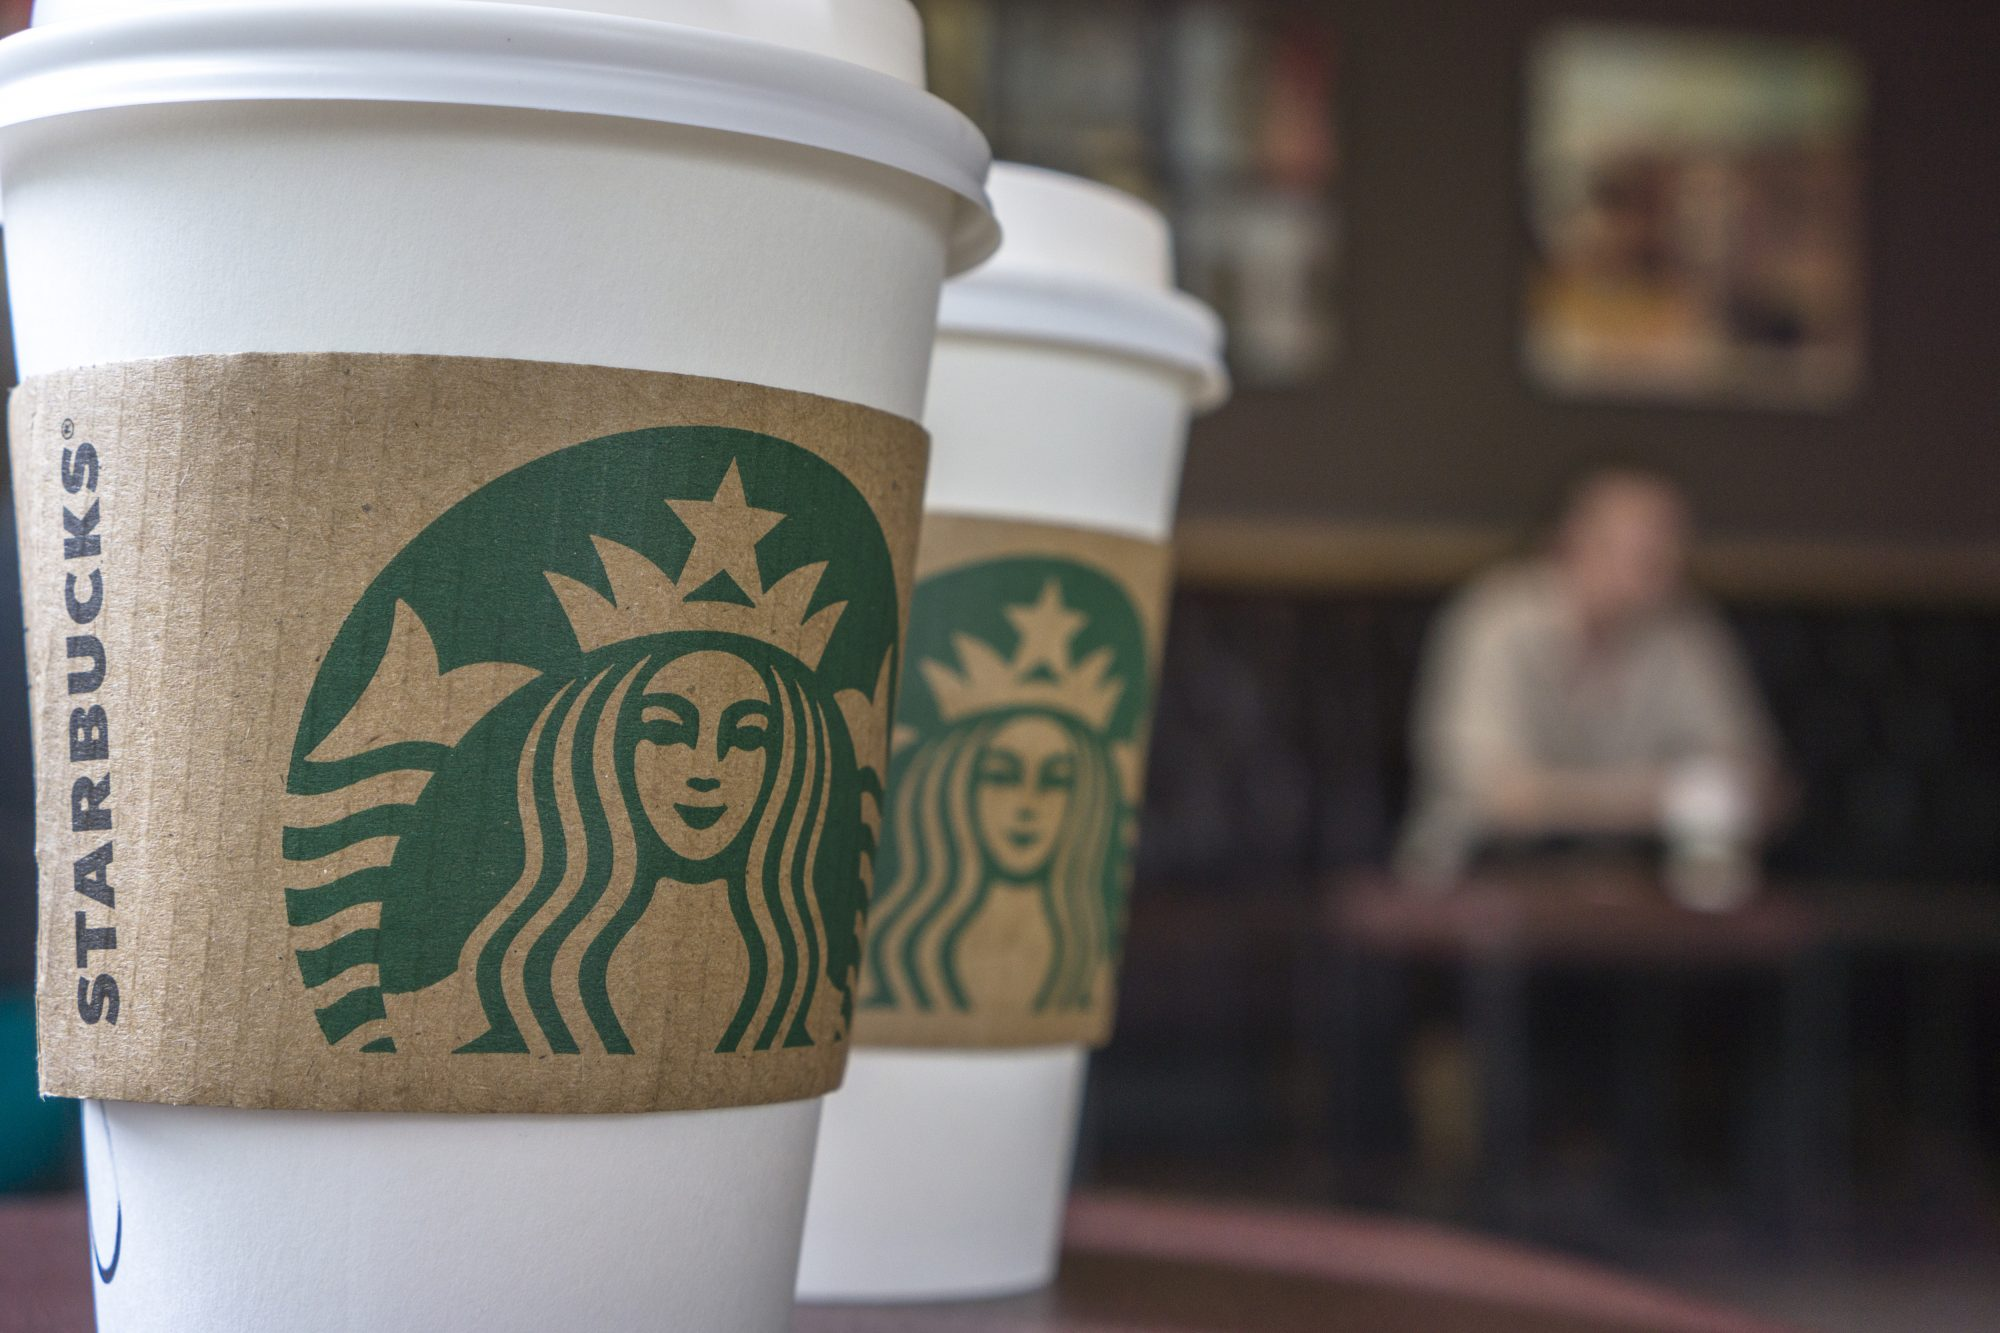 getty-starbucks-cup-image